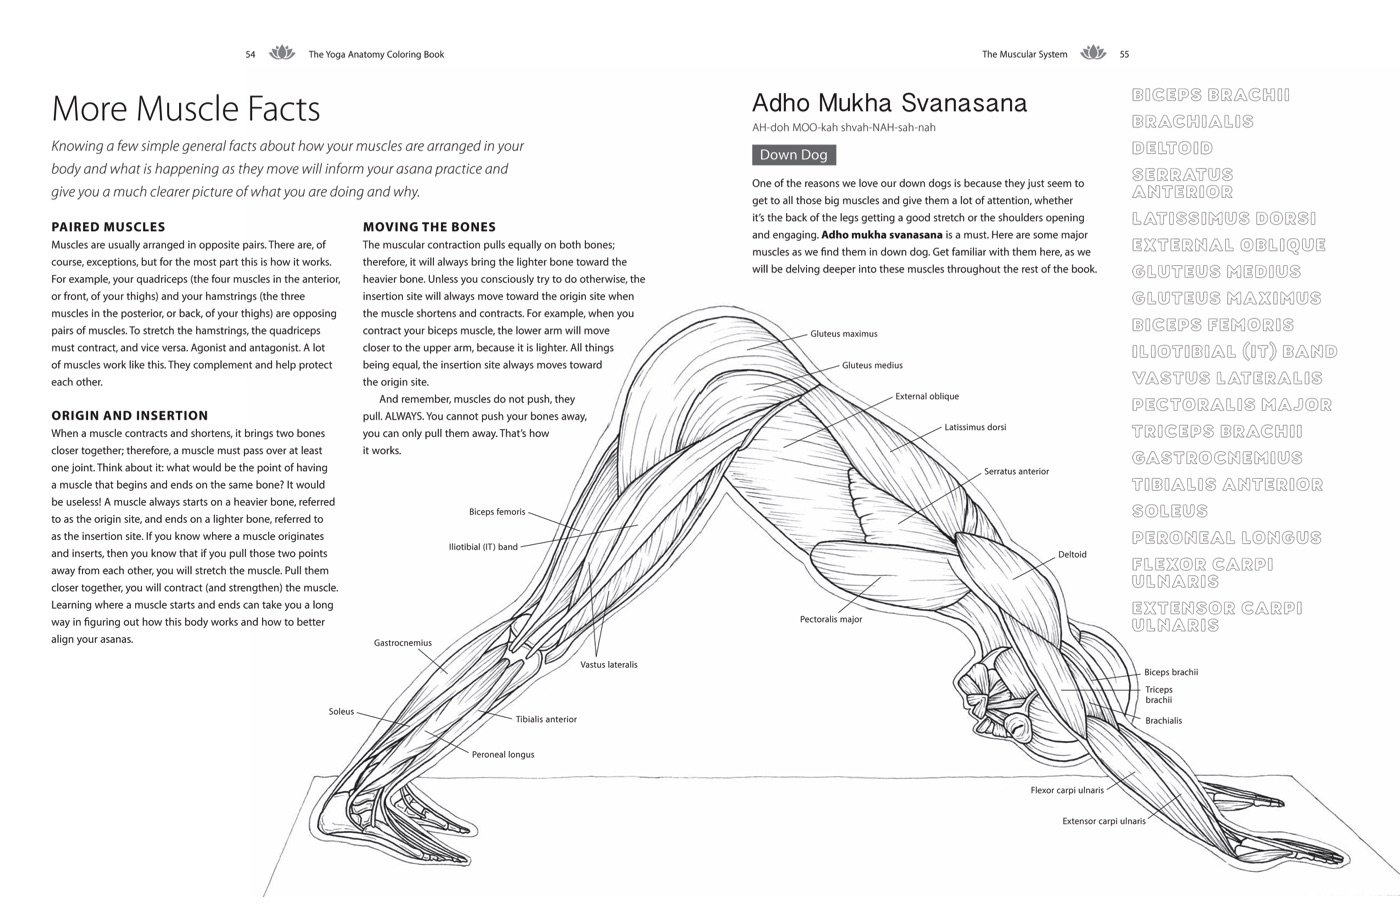 - Solloway, K: Yoga Anatomy Coloring Book The Yoga Anatomy Coloring